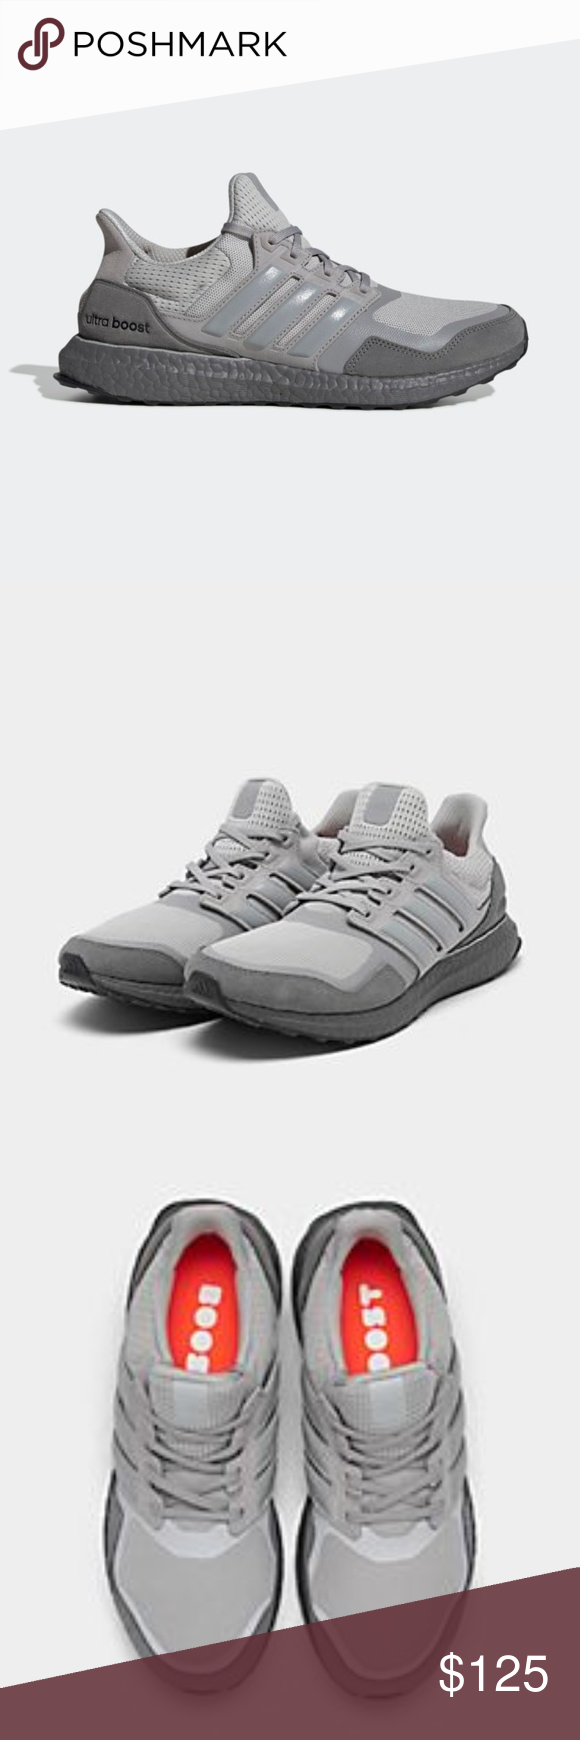 adidas ultra boost mens size 10.5